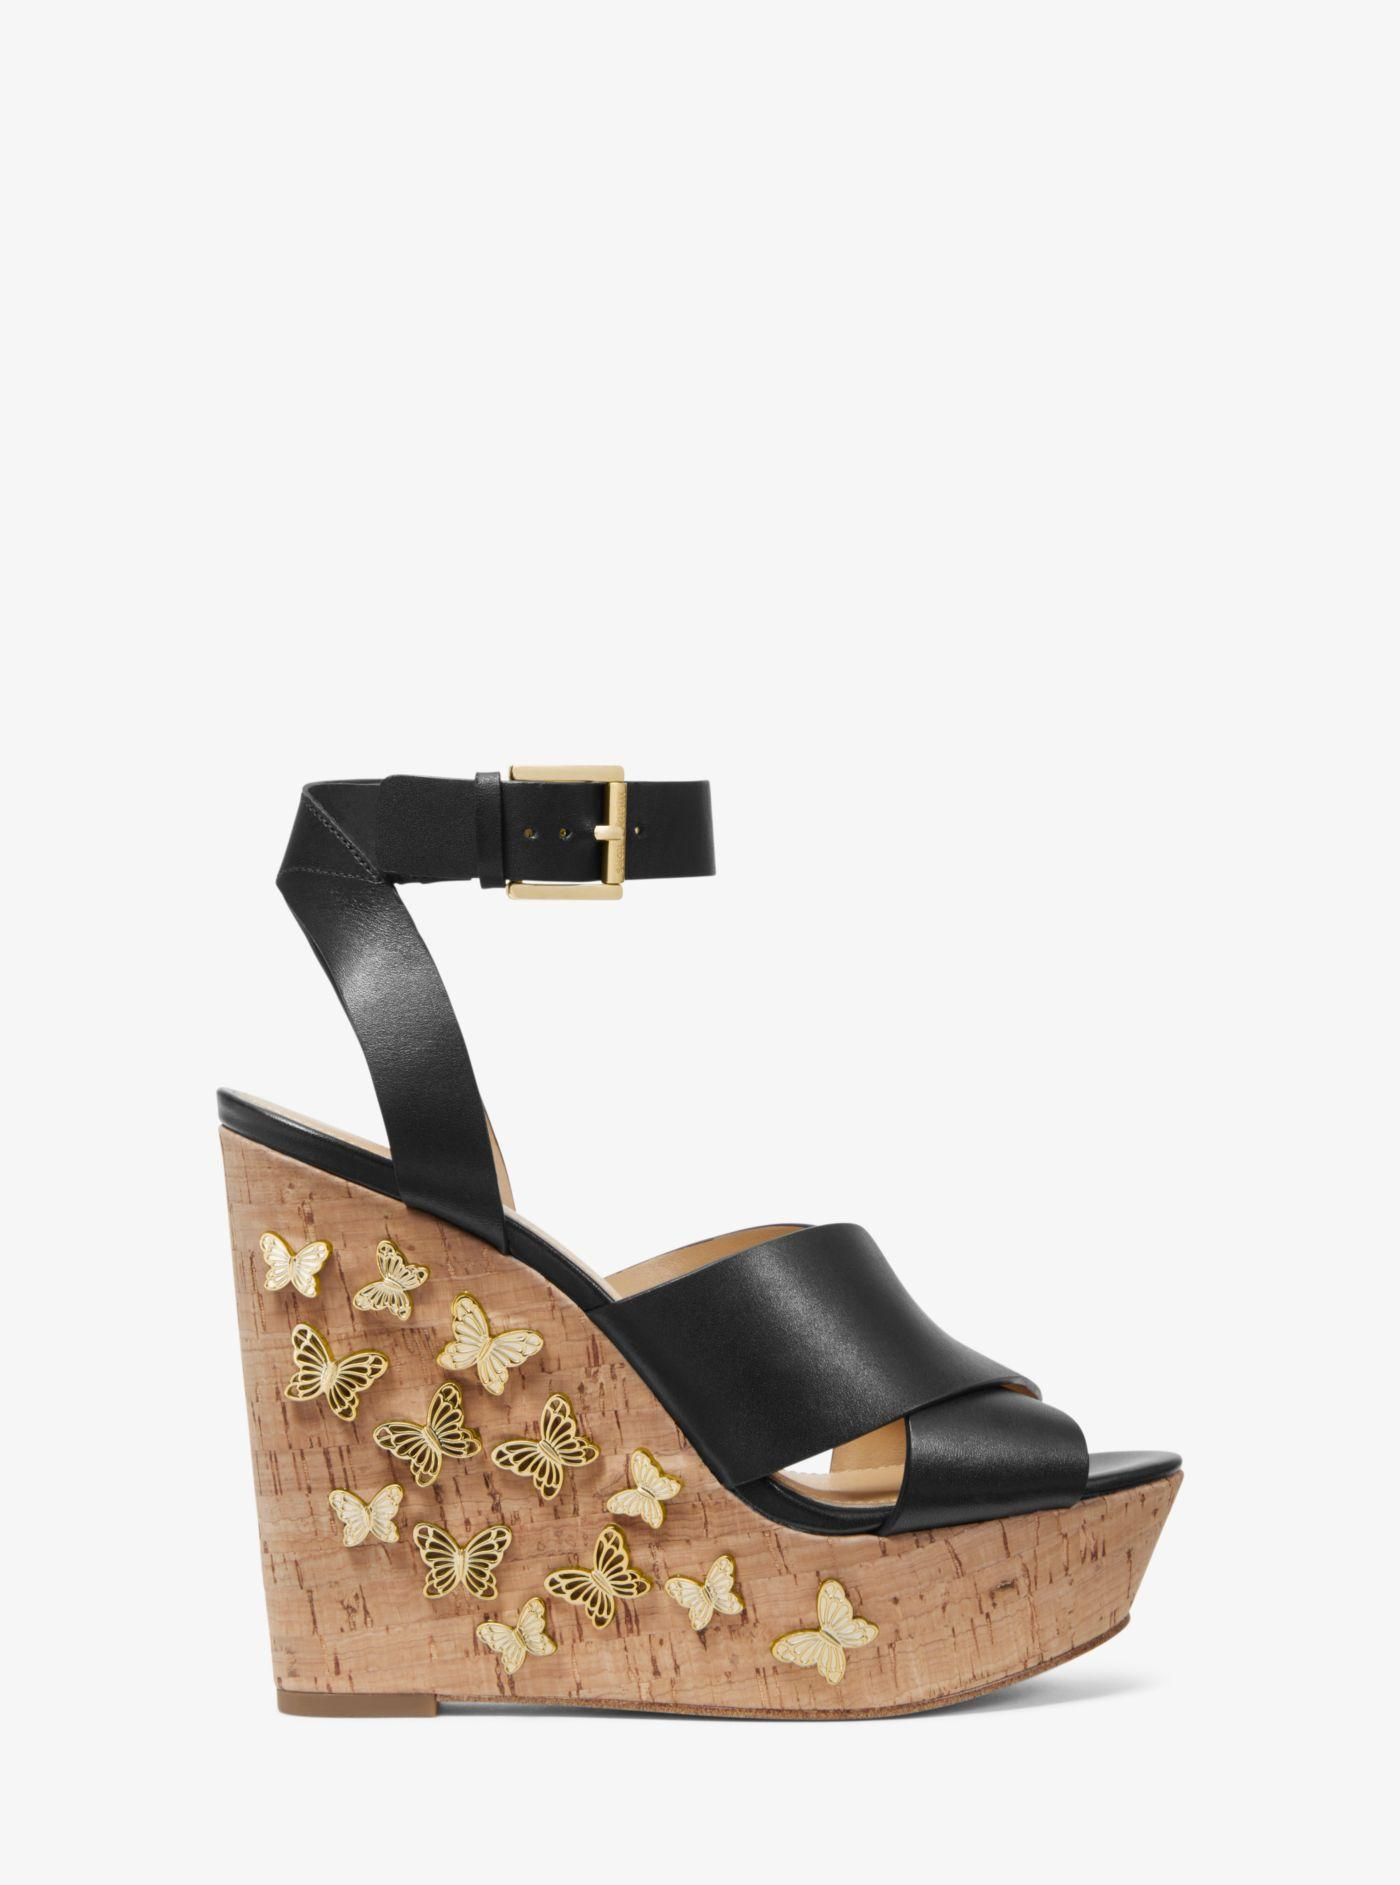 72c52b904cf Lyst - Michael Kors Lacey Butterfly Embellished Leather Wedge in Black